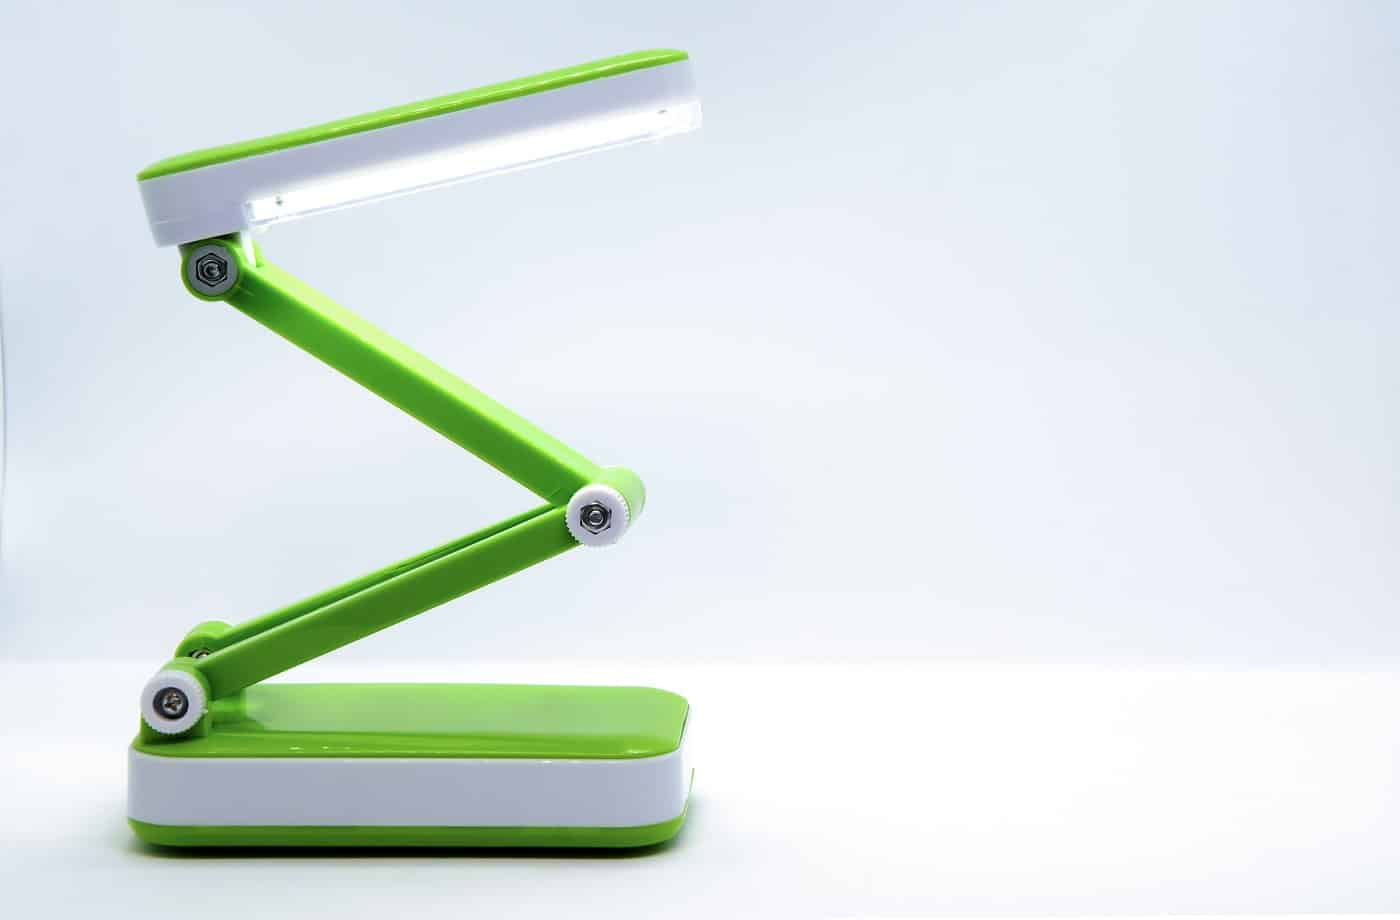 Compact foldable portable LED Desk Lamp with flexible body made of bright green plastic on a white background. Space for text.